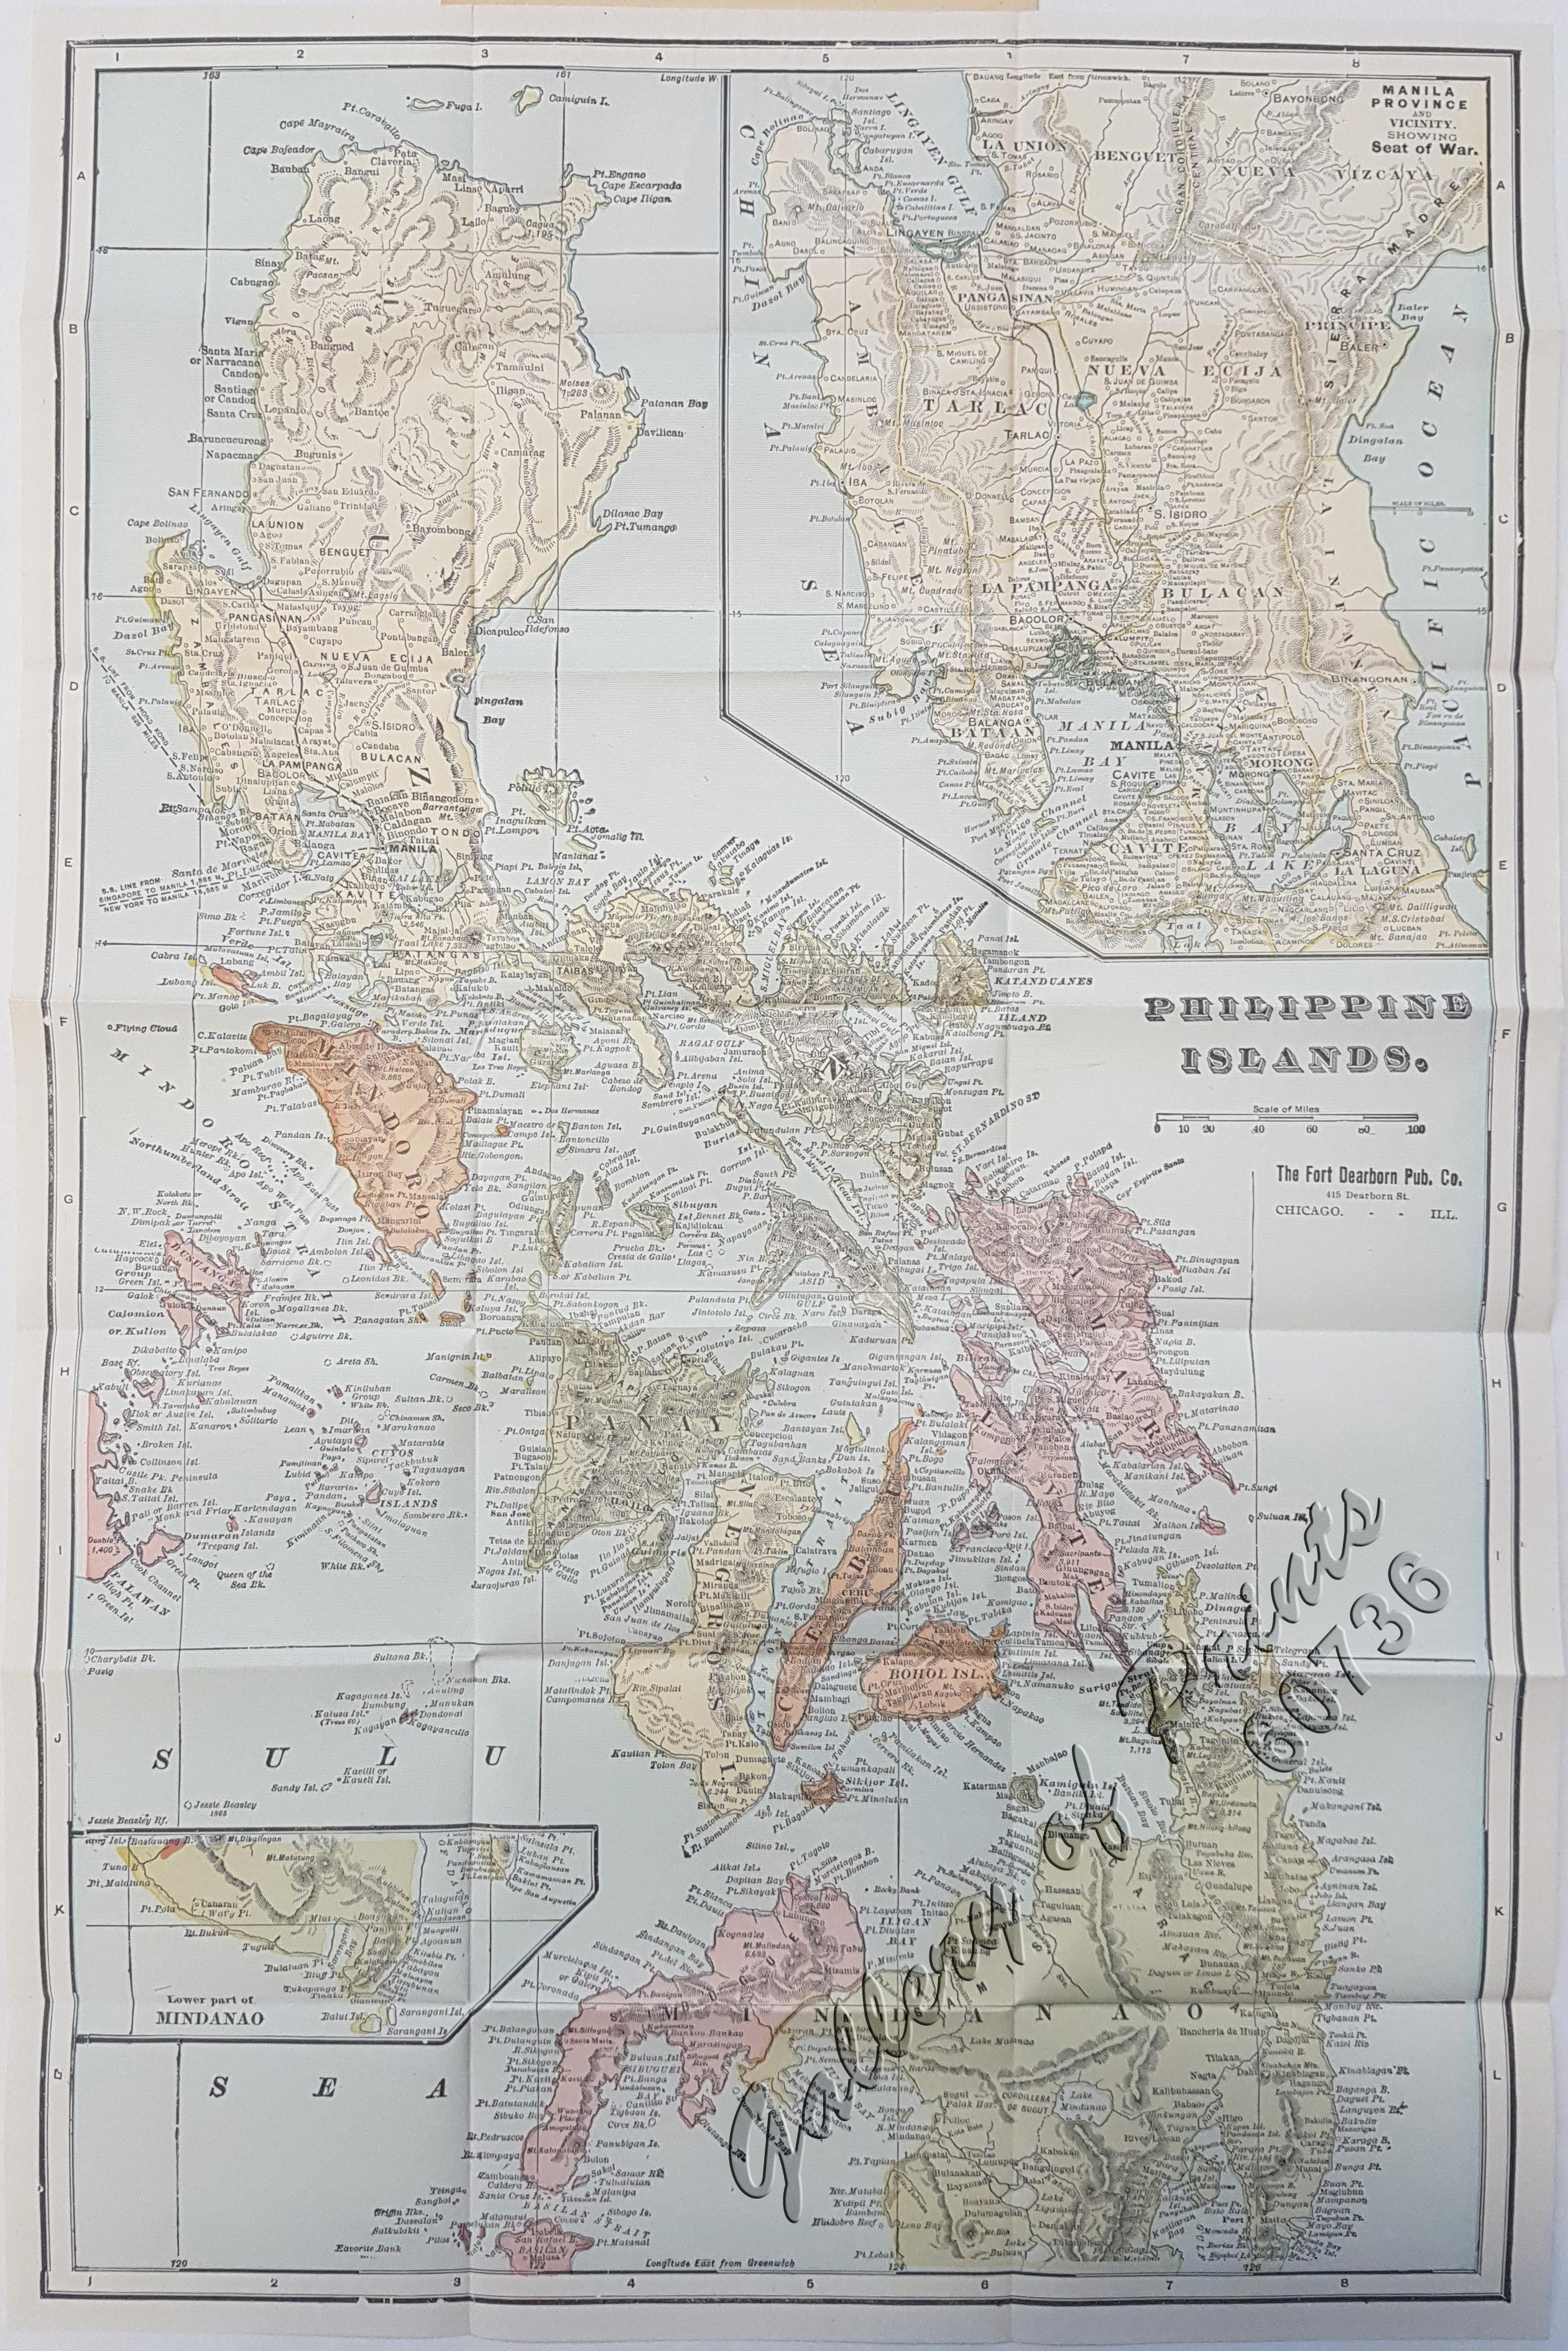 Philippine Islands Inset 1 Manila Province And Vicinity Showing